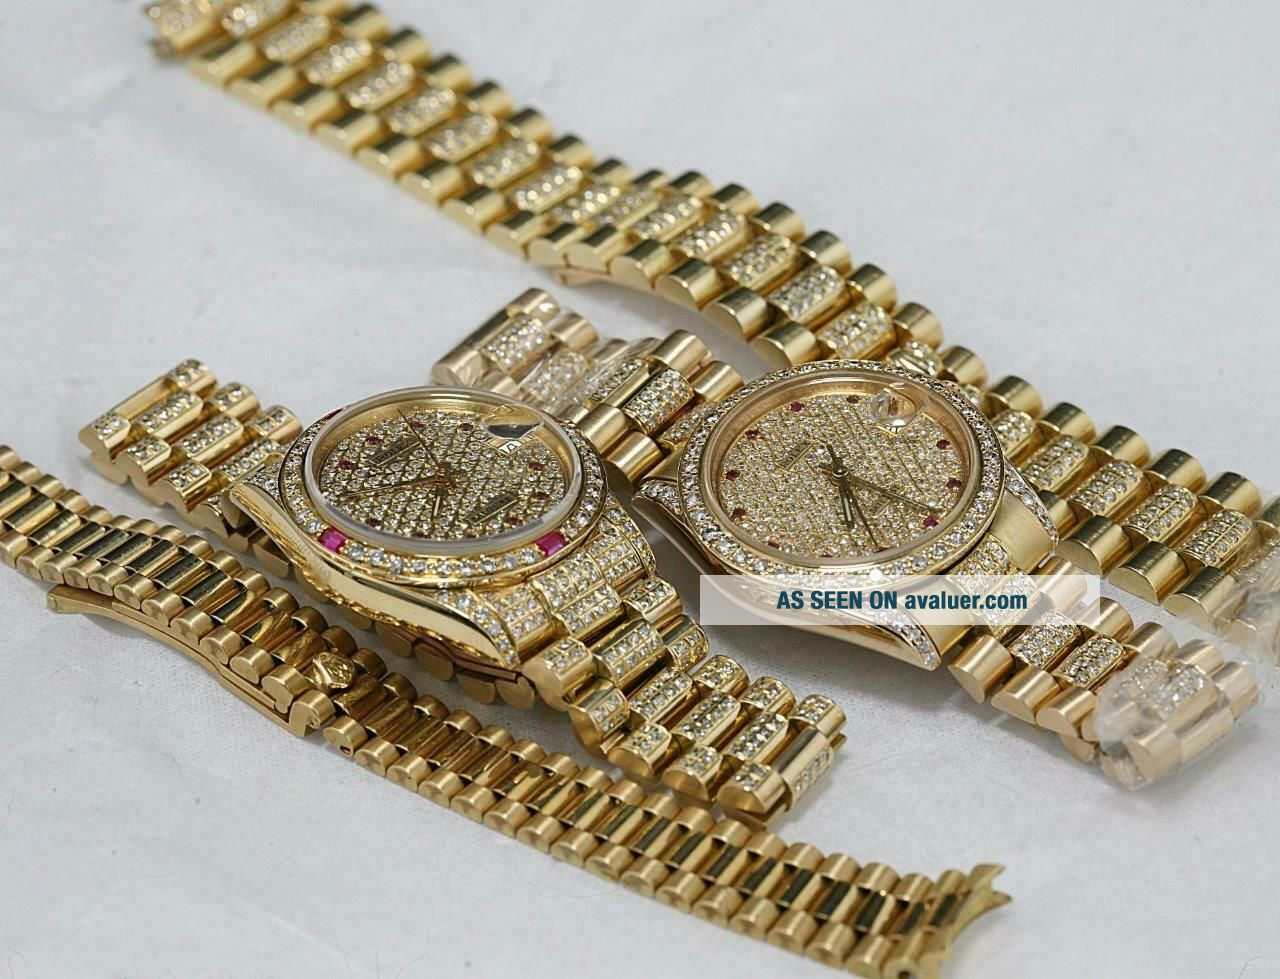 CUSTOM MADE After Market 18K Solid Gold Men ' s 31mm Datejust Quick Set Auto Watch